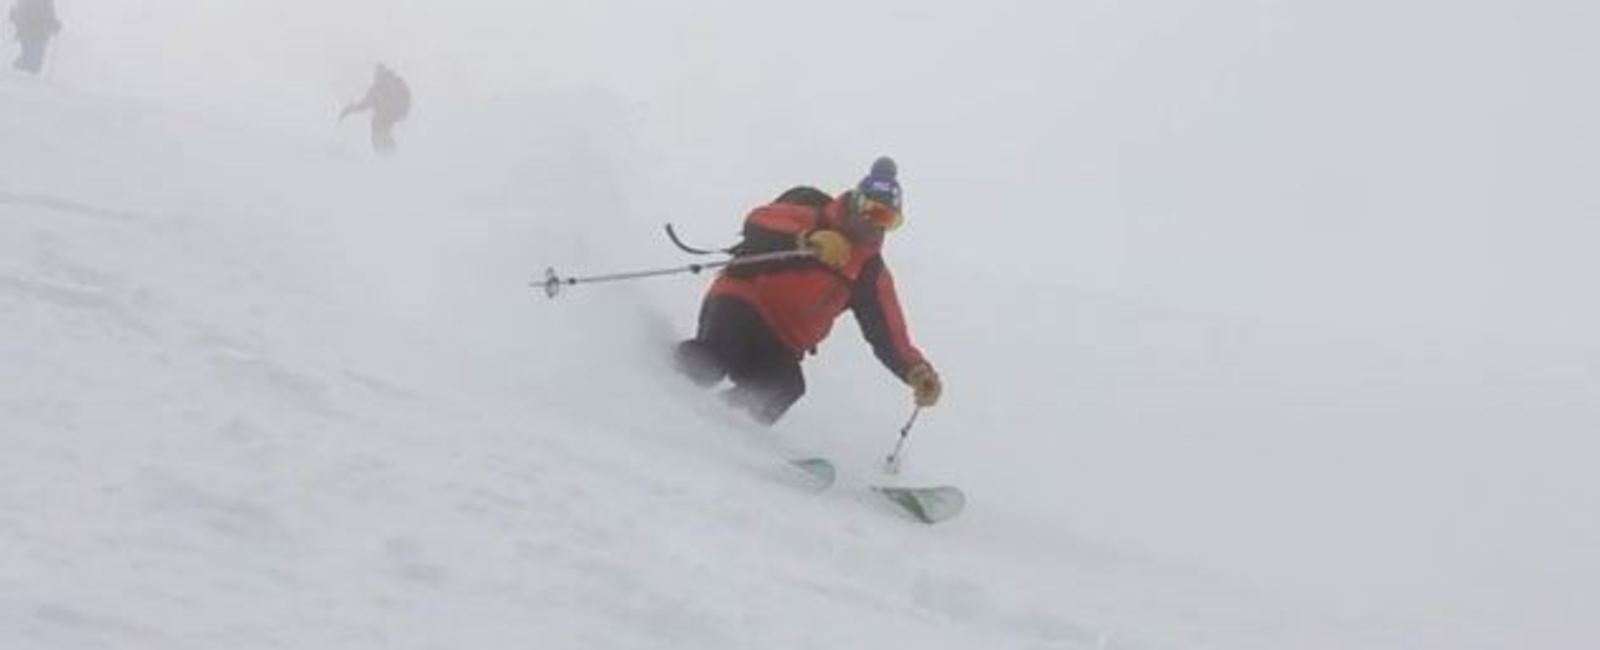 Powder Skiing on Halloween 2013